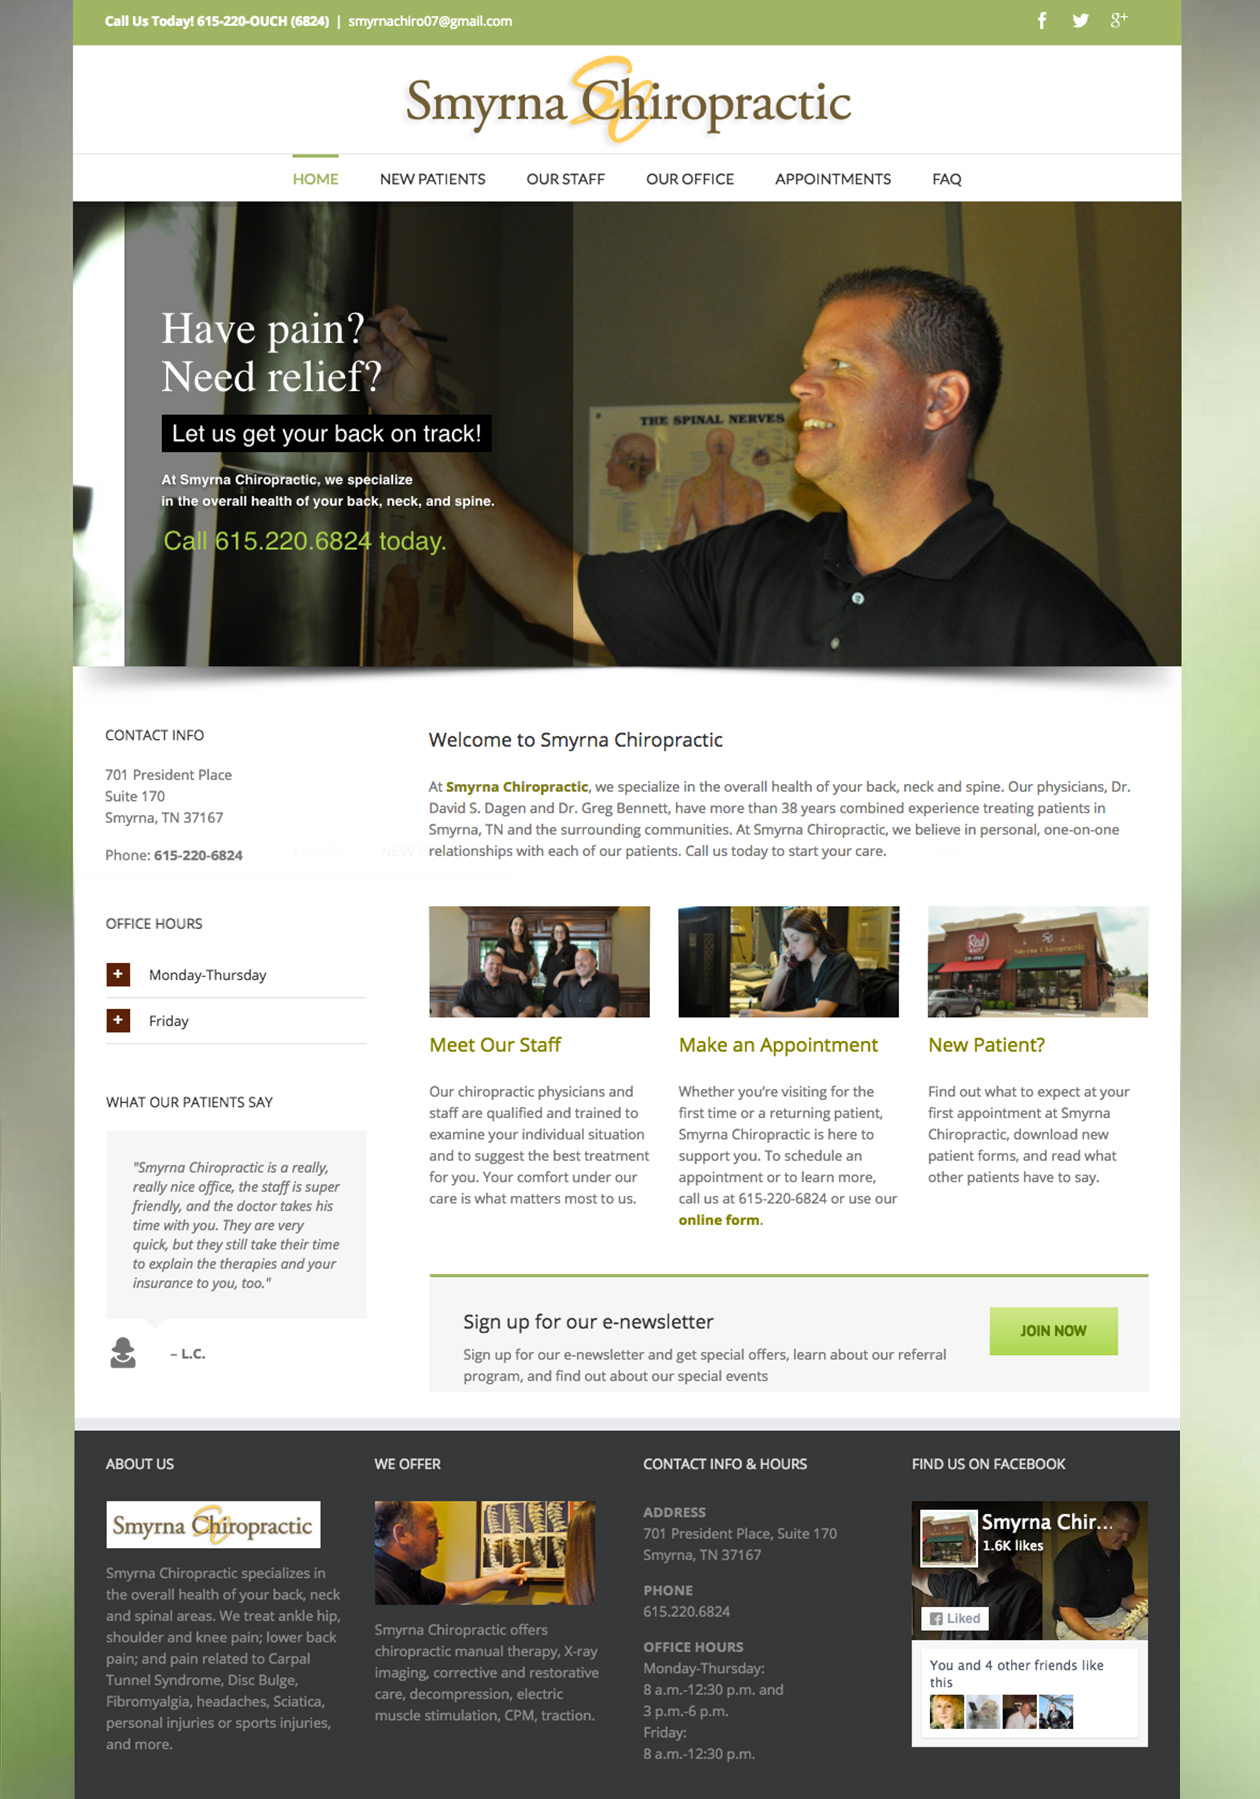 web site development, web site design, Smyrna Chiropractor